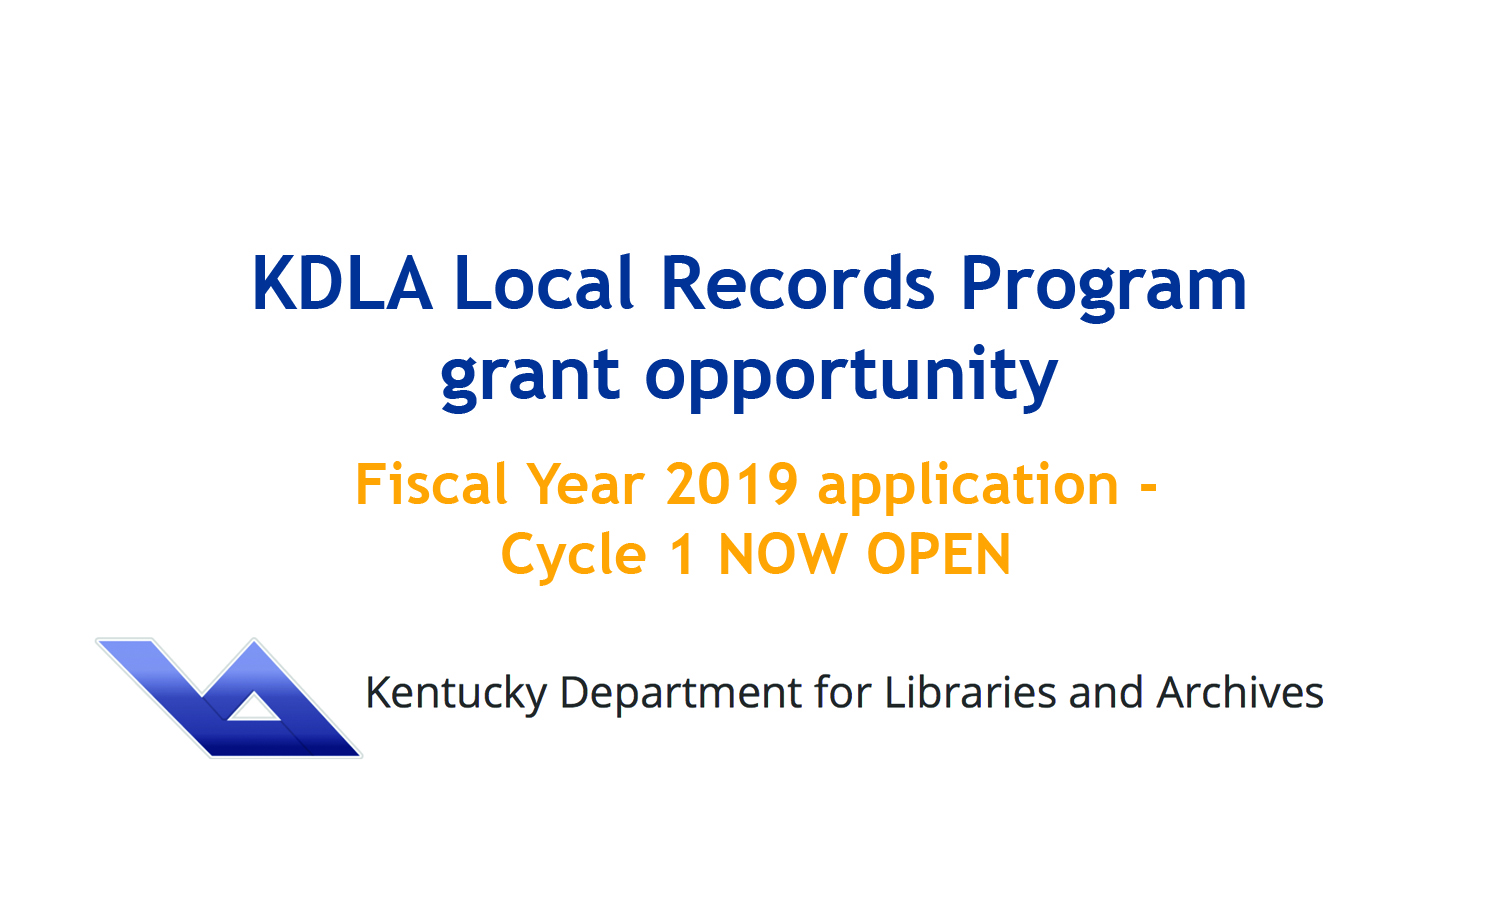 KDLA Local Records Program Grants